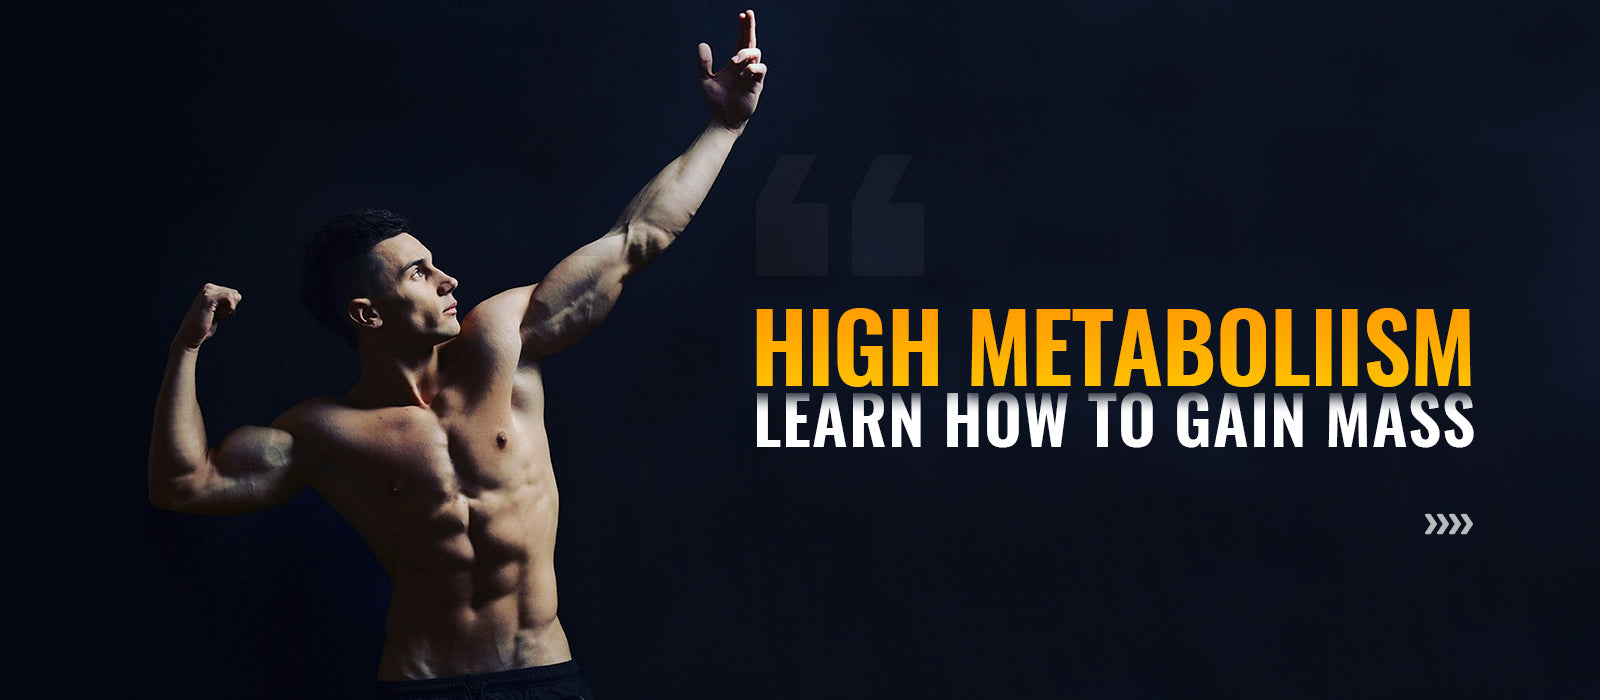 High Metabolism? Learn How To Gain Mass